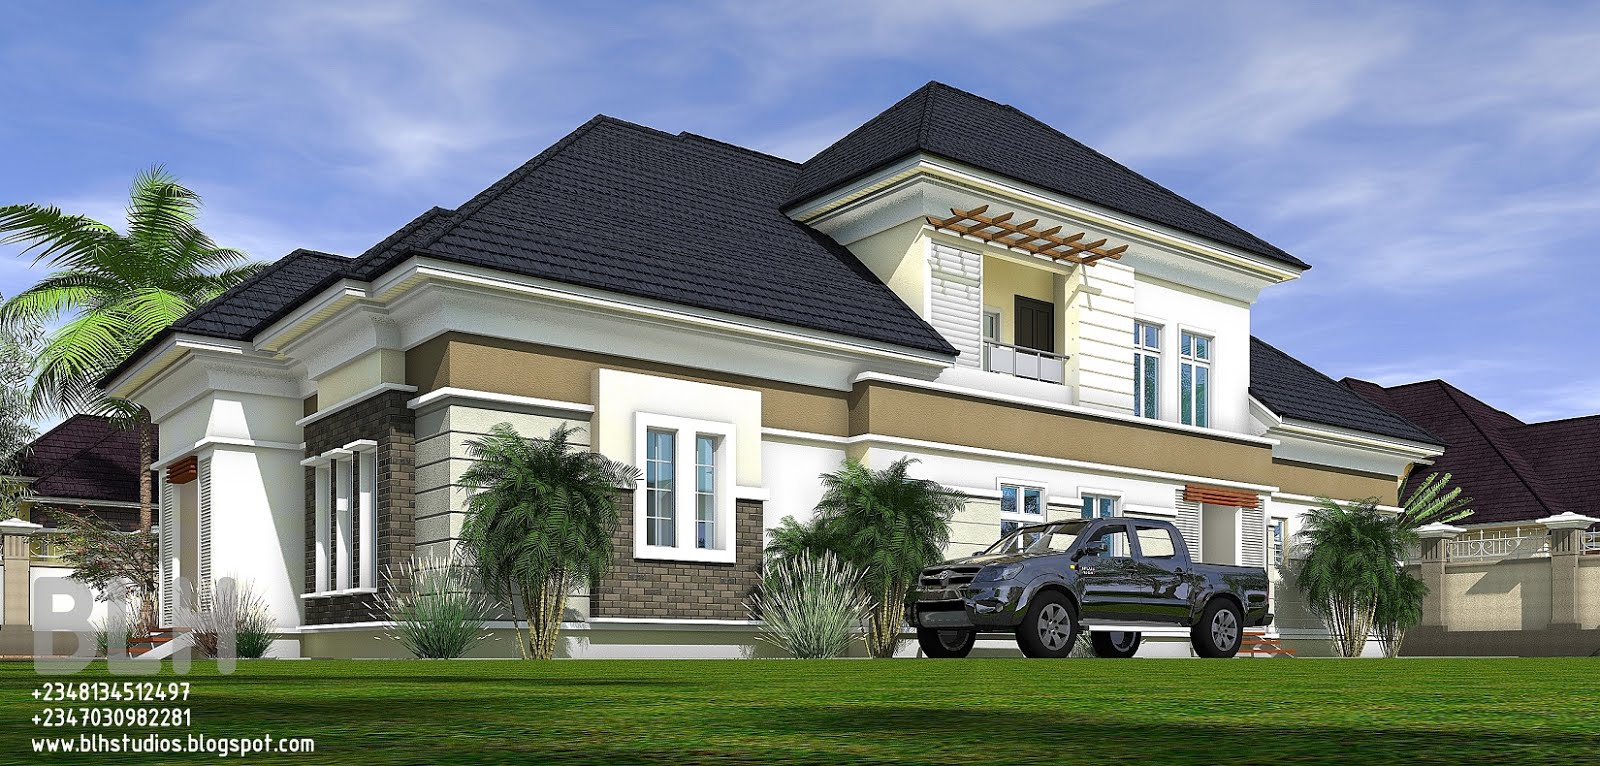 Architectural designs by blacklakehouse 3 bedroom for 3 bedroom architectural designs